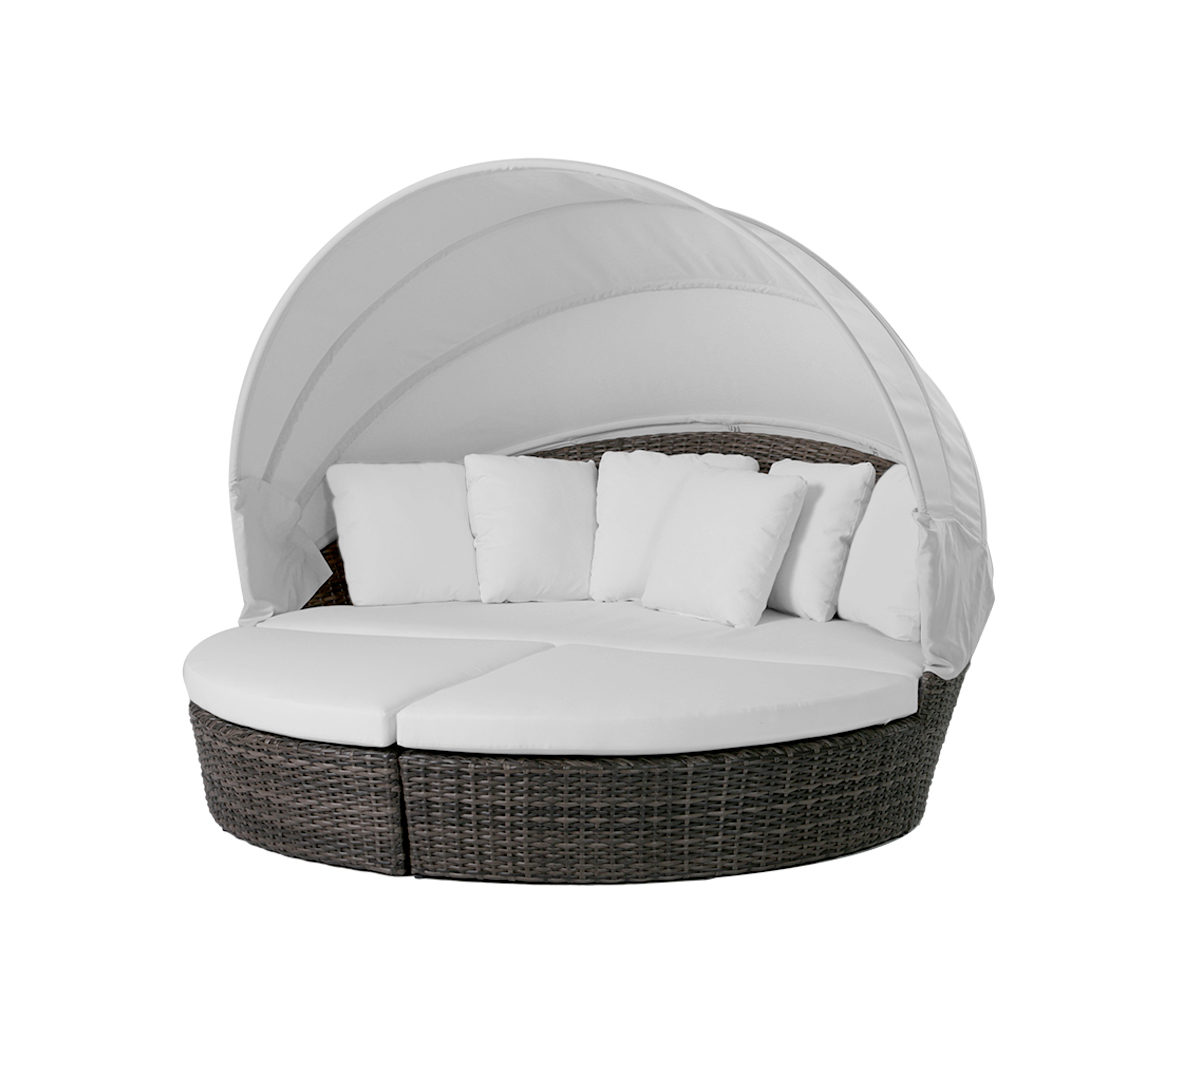 Coral-Gables-Round-Daybed-1200x1067